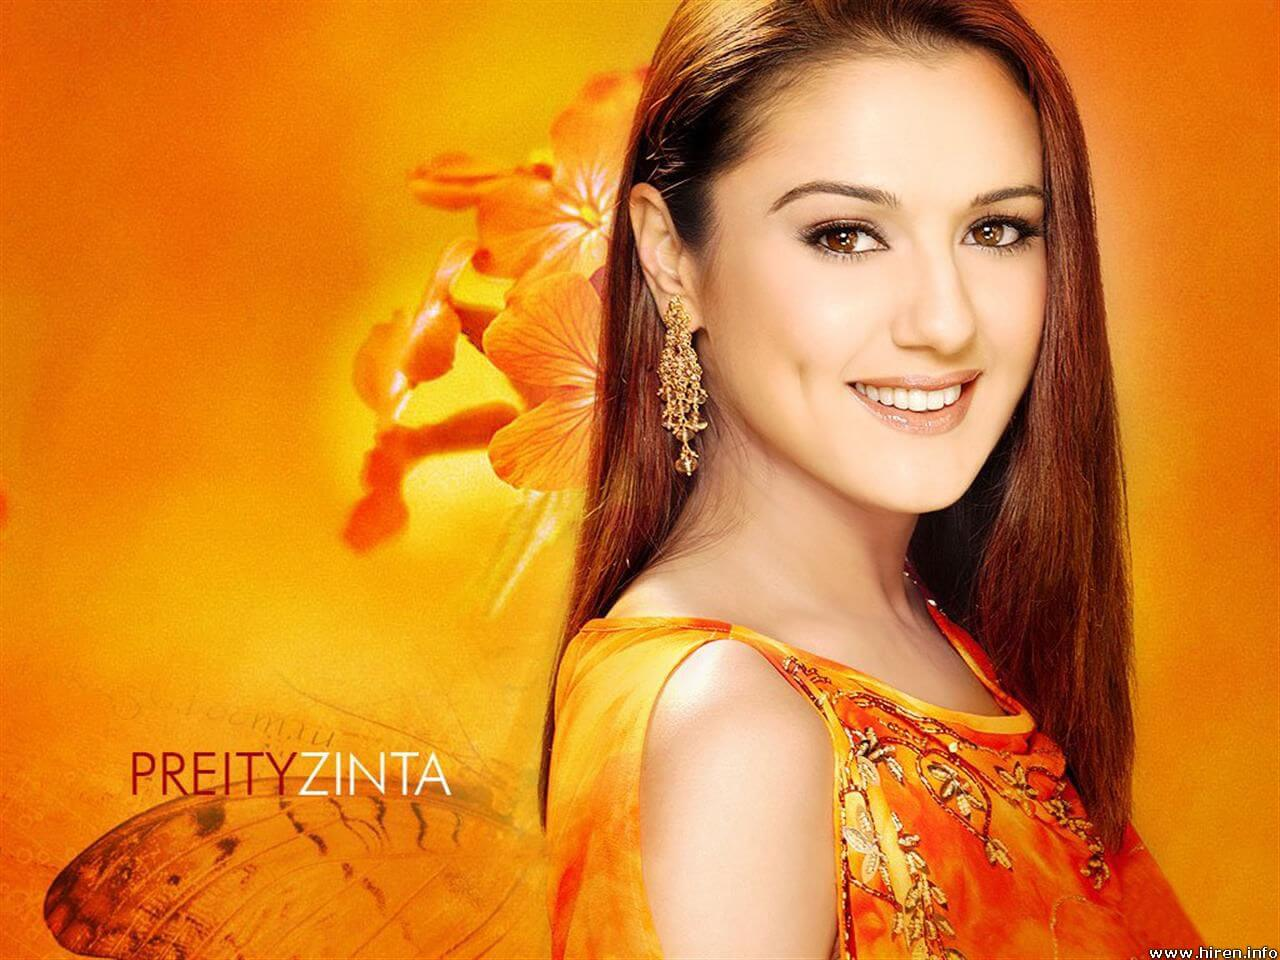 Preity Zinta Age, Husband, Photo(image), Height, Family, Marriage, Biography, Net Worth, Birthday Date, Kids, Education, Awards, Instagram, Wiki, Twitter, Imdb, Facebook (22)